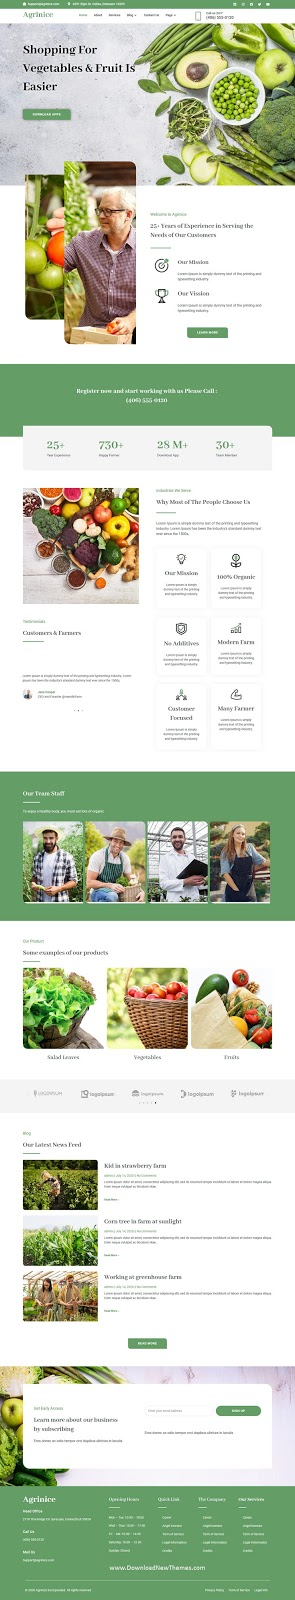 Agriculture and Organic Food Template Kit